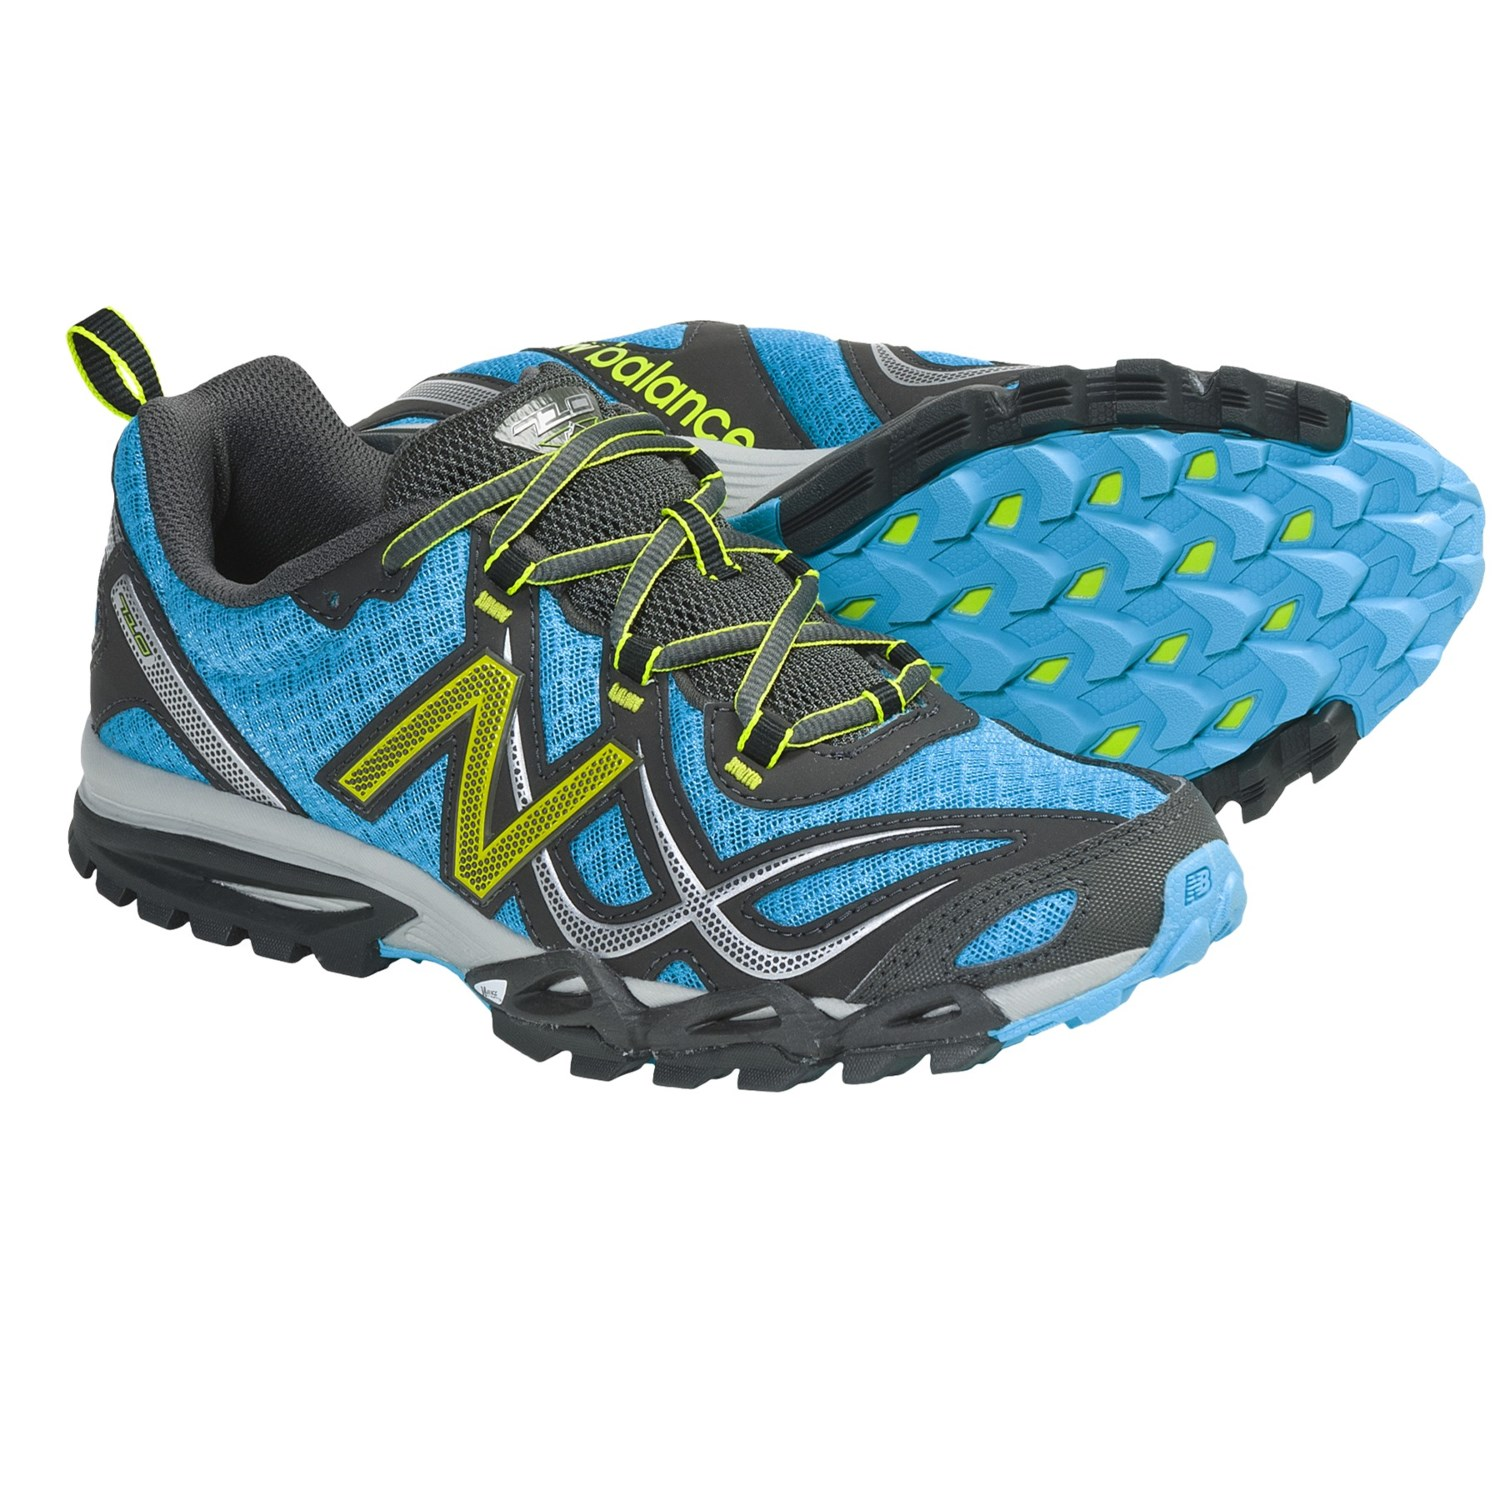 New Balance WT710GG Trail Running Shoes (For Women) in Teal/Black